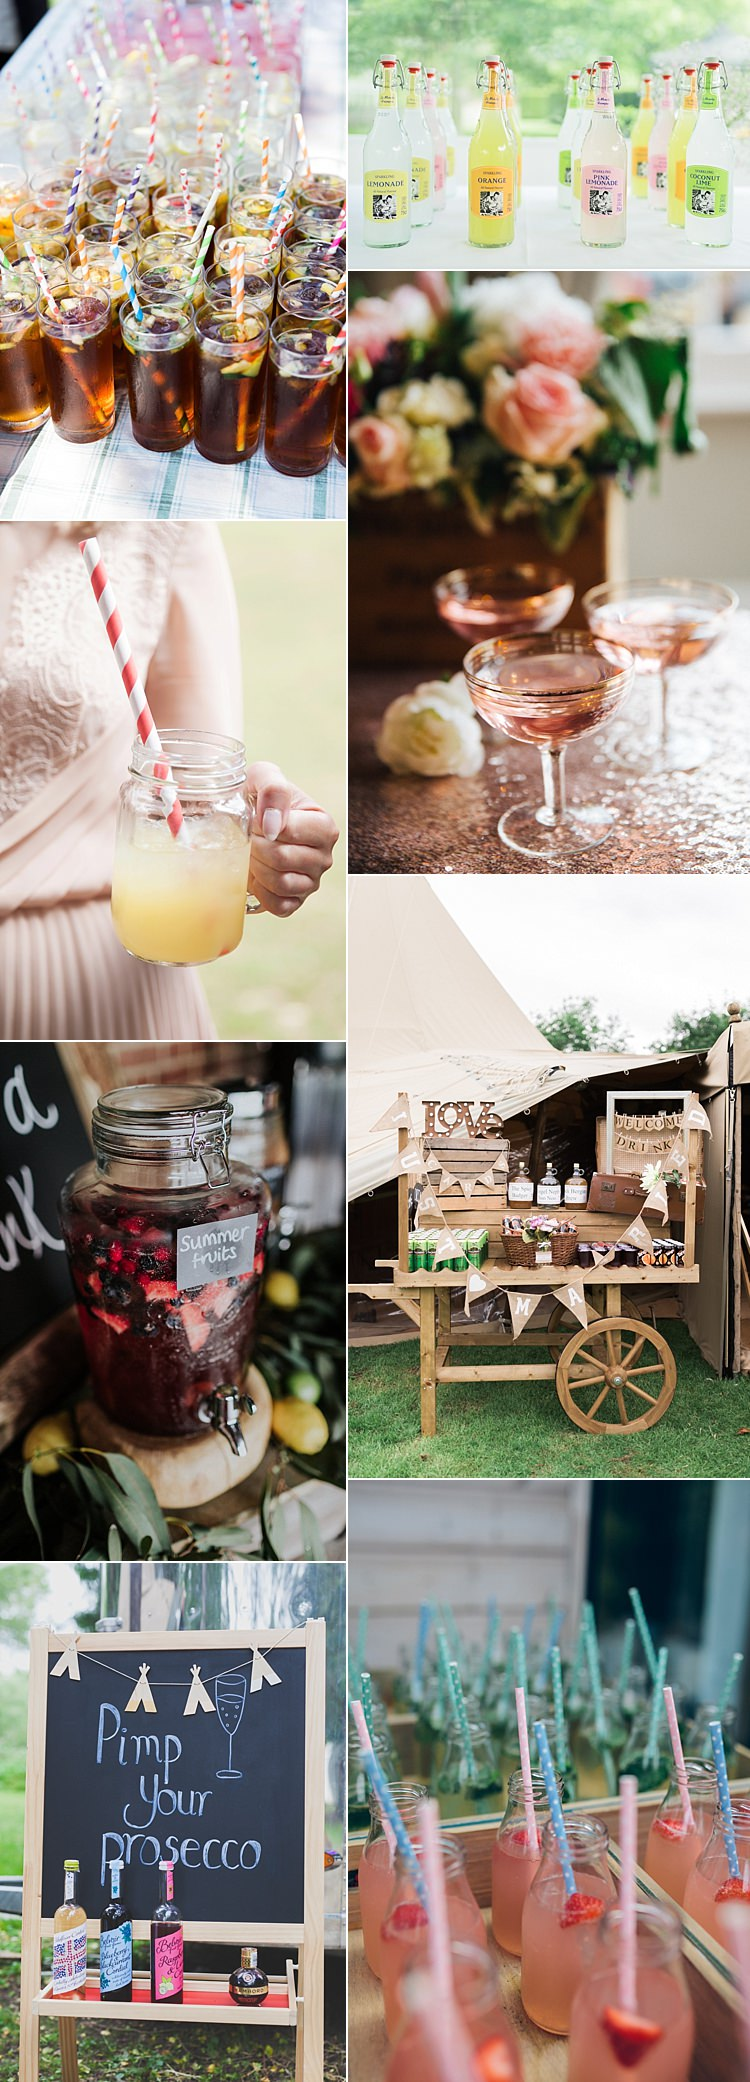 Summer Wedding Ideas Drinks Cocktails Stand Bar Prosecco